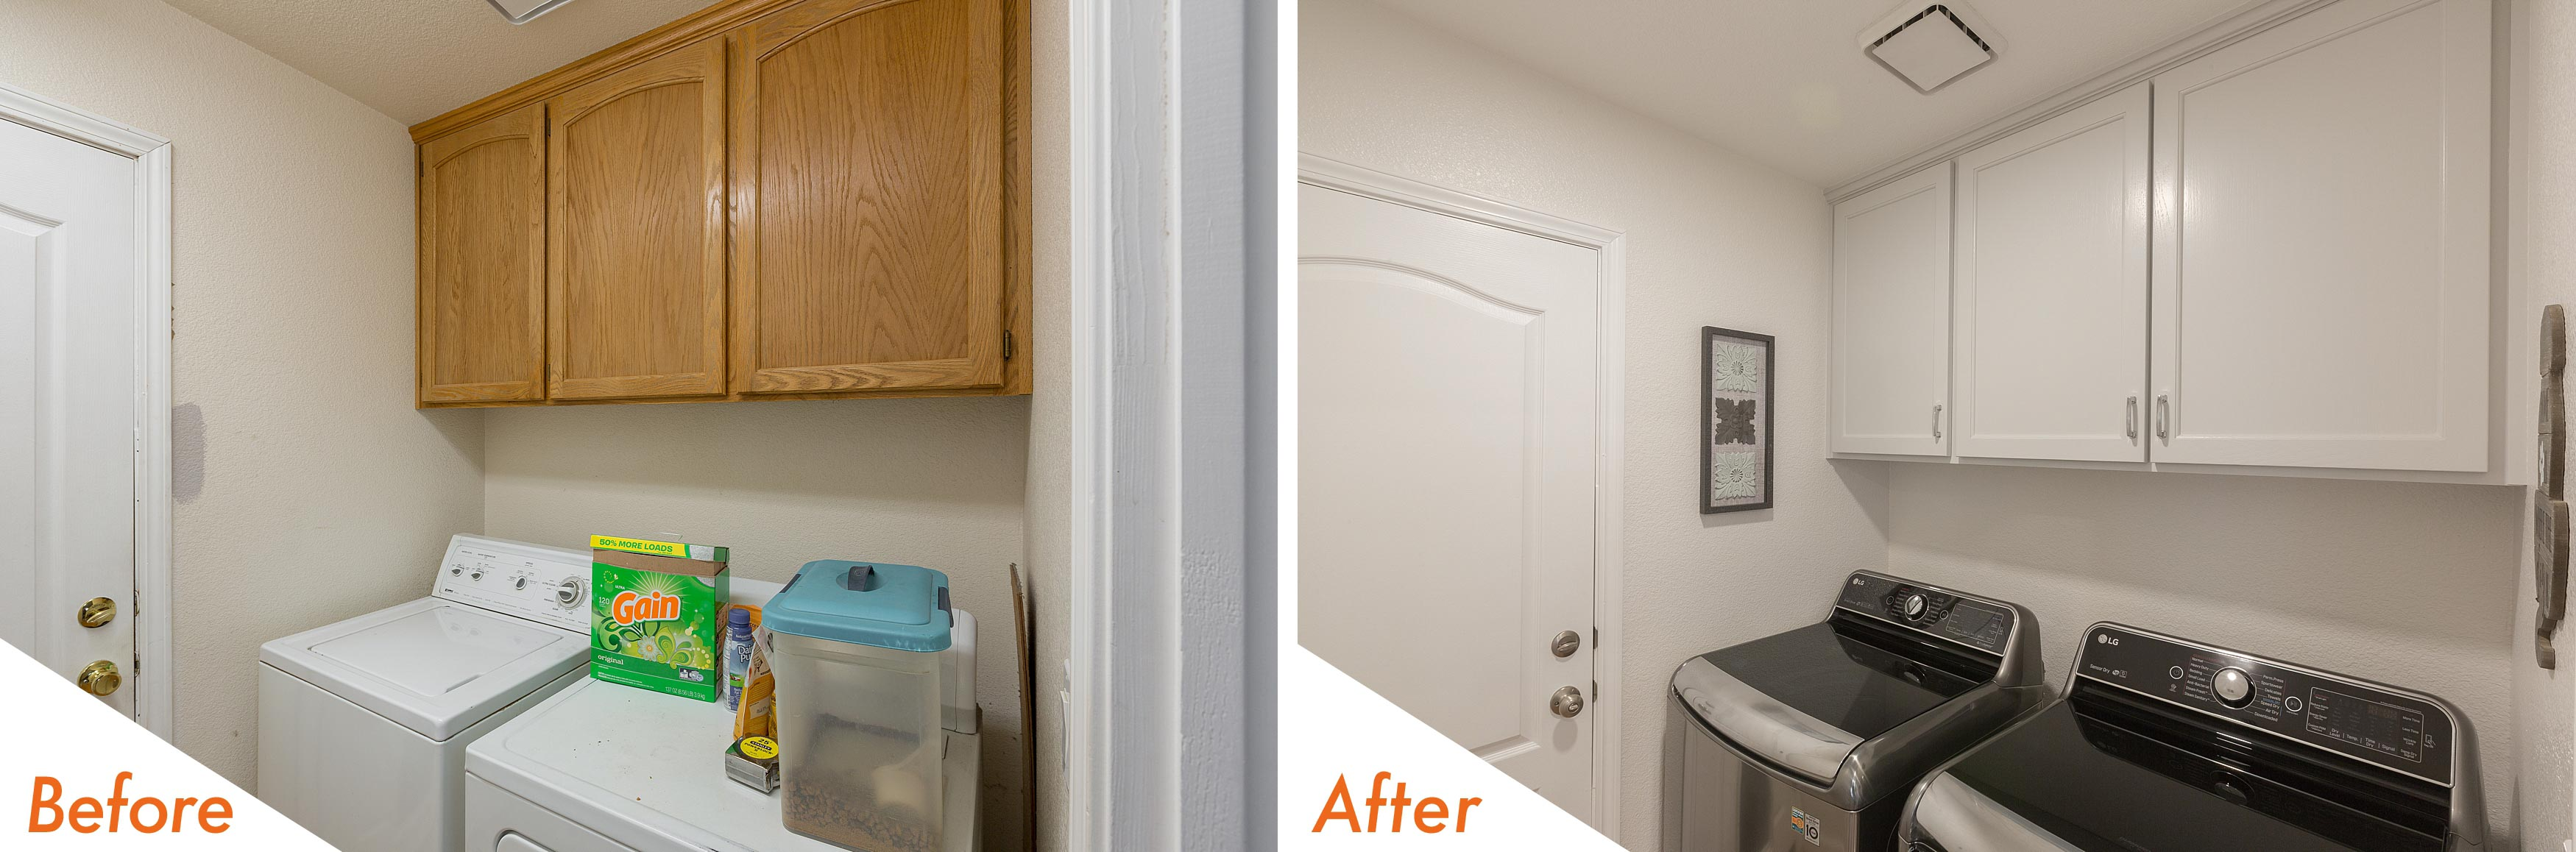 Before & After Laundry Remodel